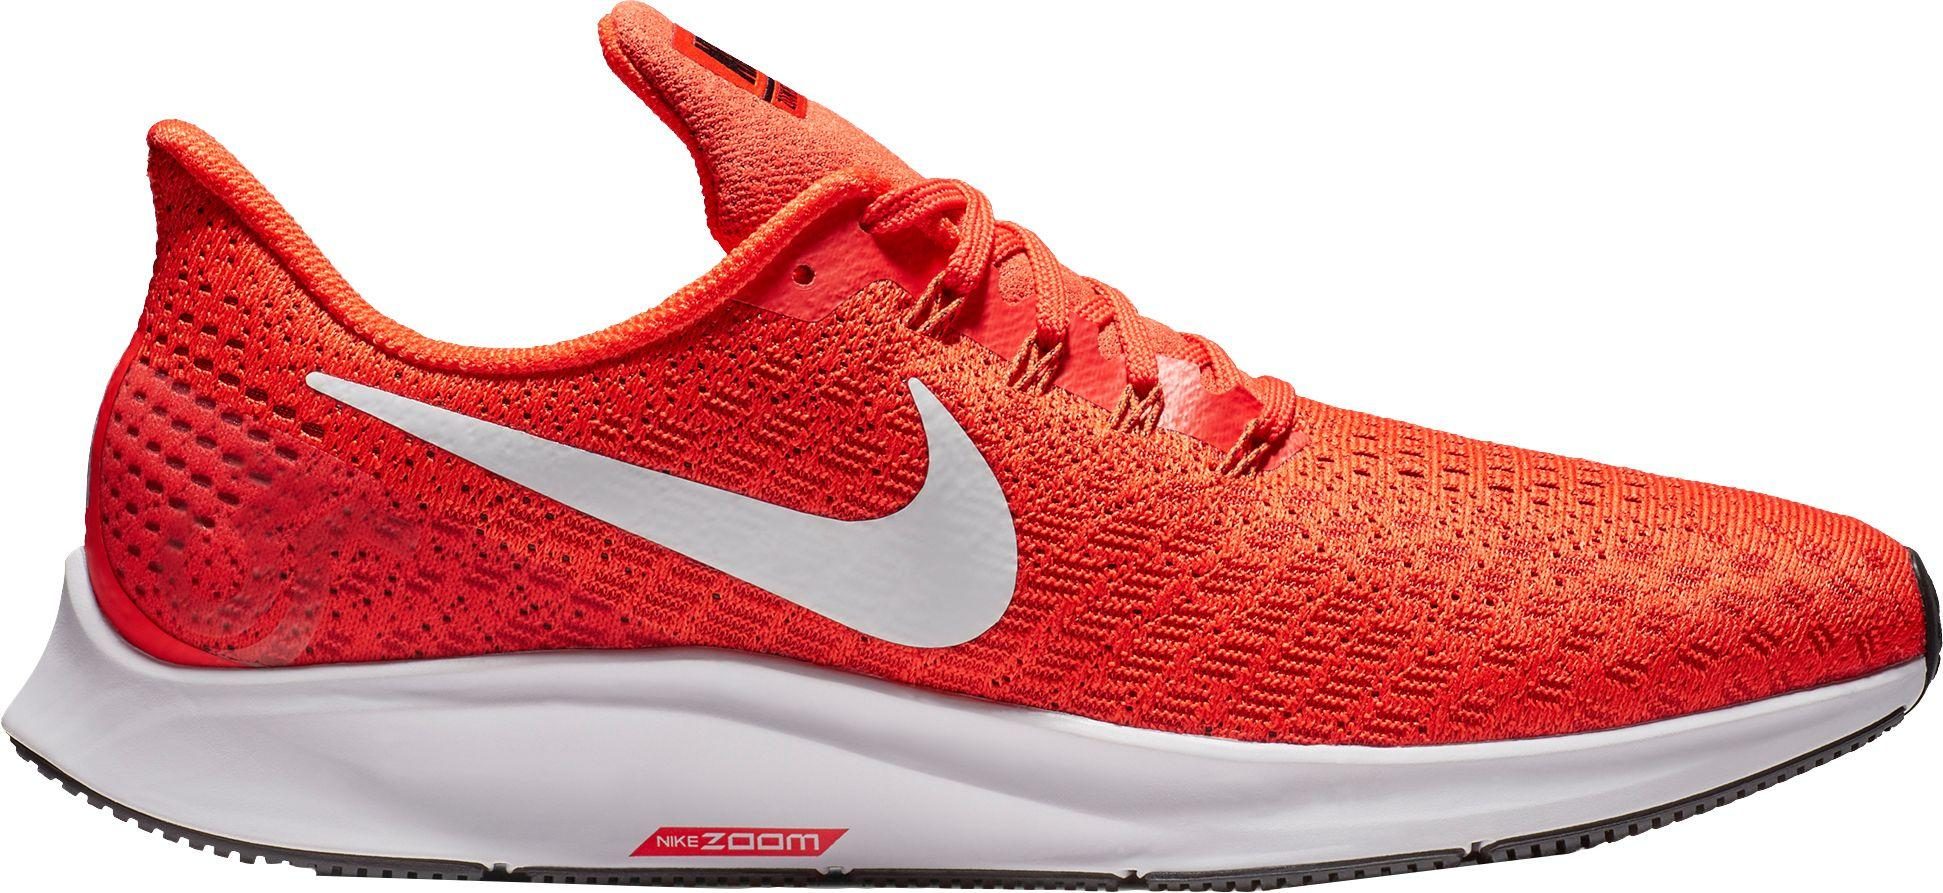 huge selection of 60fe6 ed3f2 Men's Red Air Zoom Pegasus 35 Running Shoes